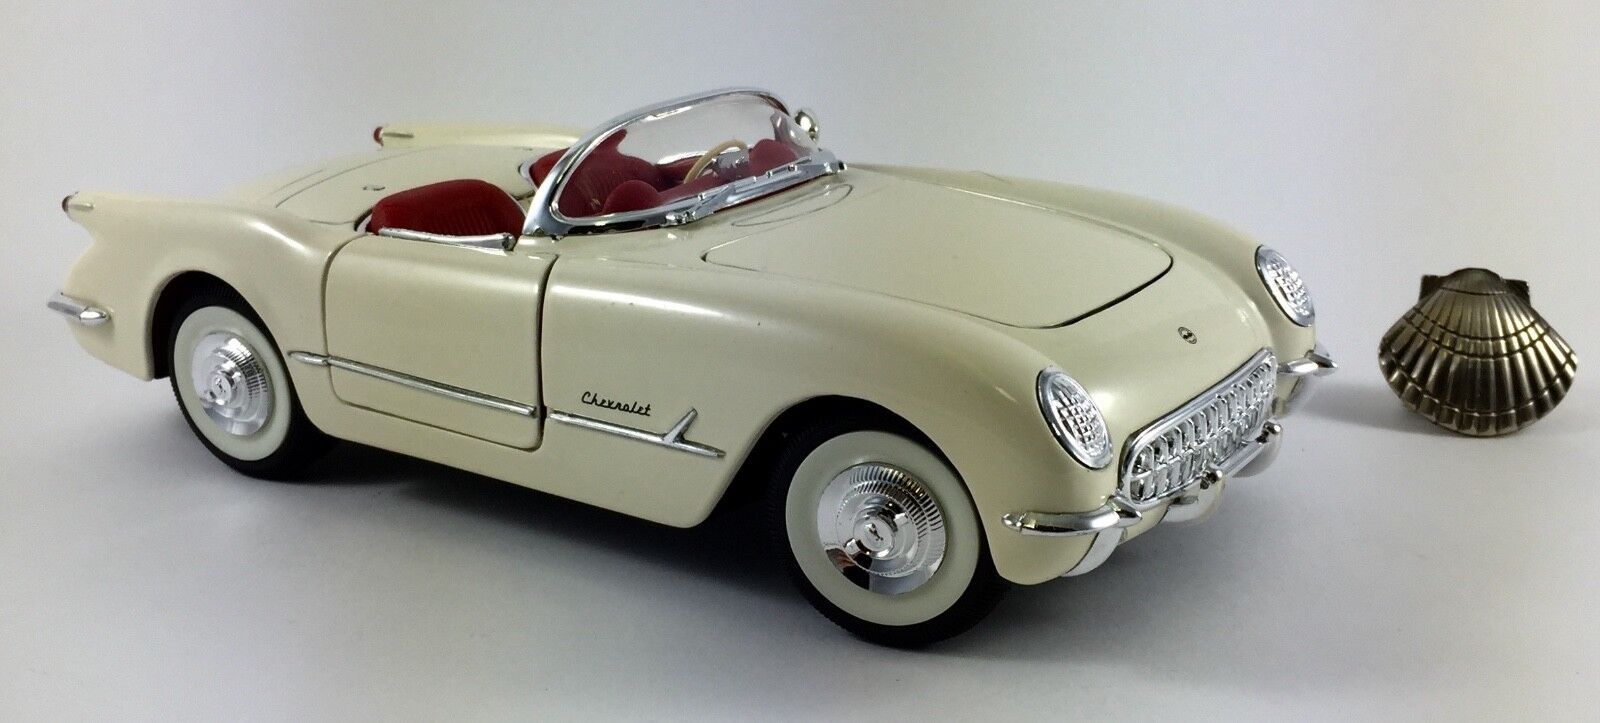 1 18 Solido Chevrolet Corvette Congreenible 1953 with blister & fascicle